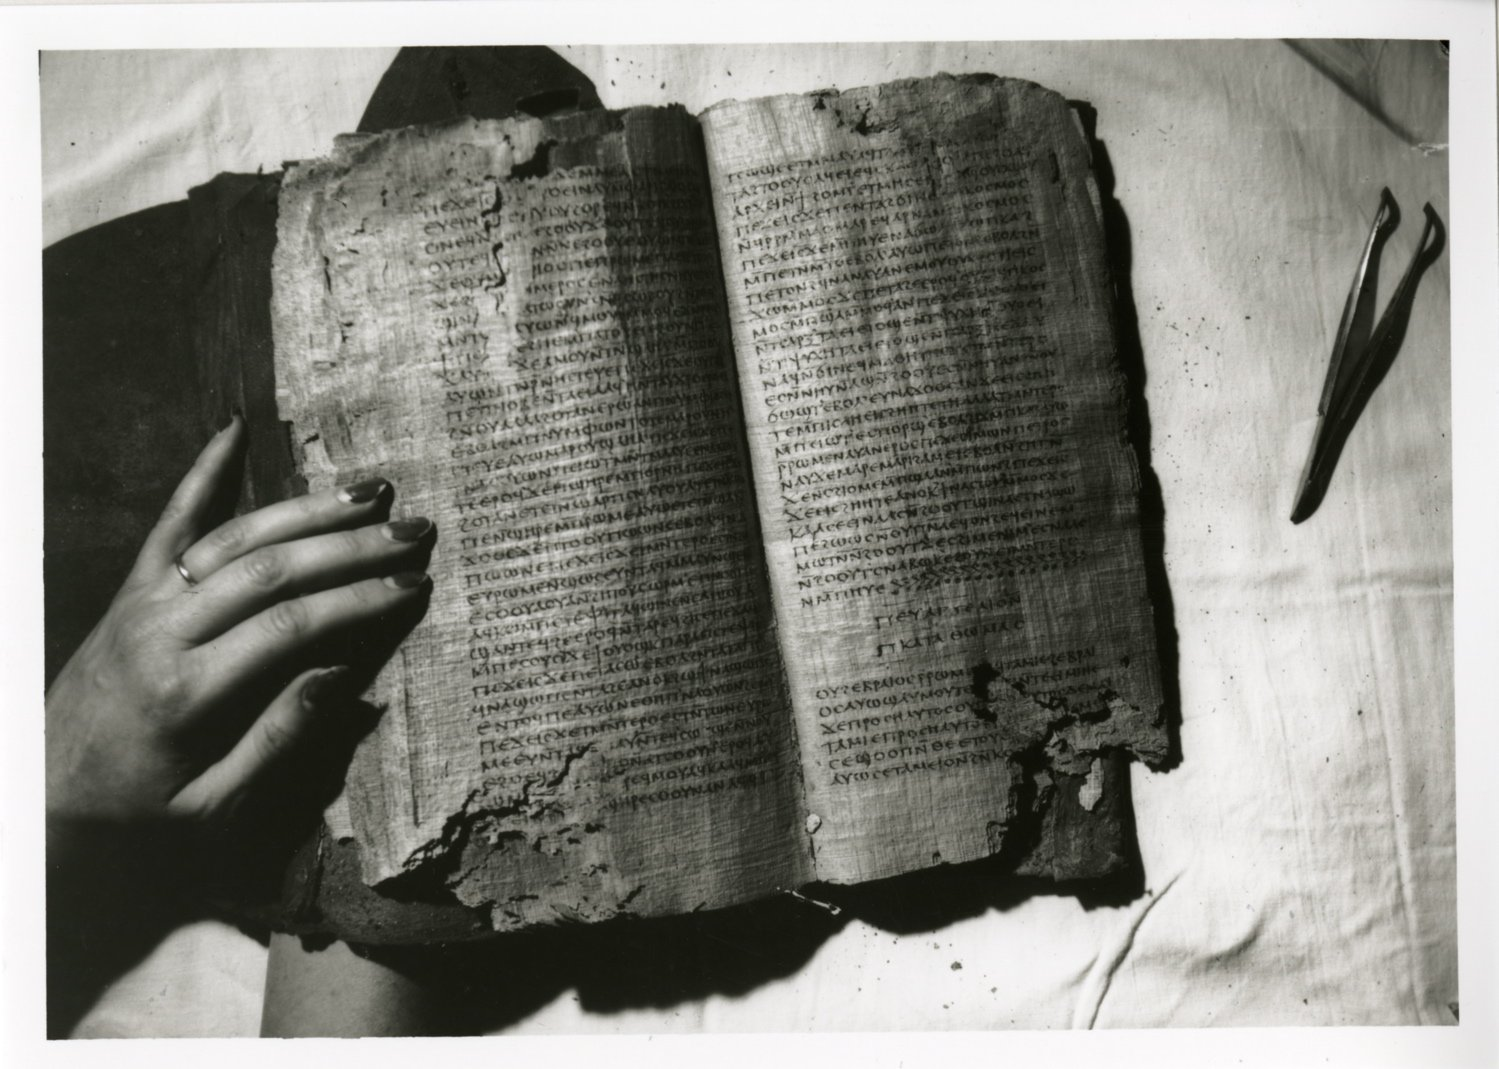 nag hammadi library dating Nag hammadi näg hä´mädi [key], a town in egypt near the ancient town of chenoboskion, where, in 1945, a large cache of gnostic texts in the coptic language was discovered the nag hammadi manuscripts, dating from the 4th cent ad, include 12 codices of tractates, one loose tractate, and a copy.